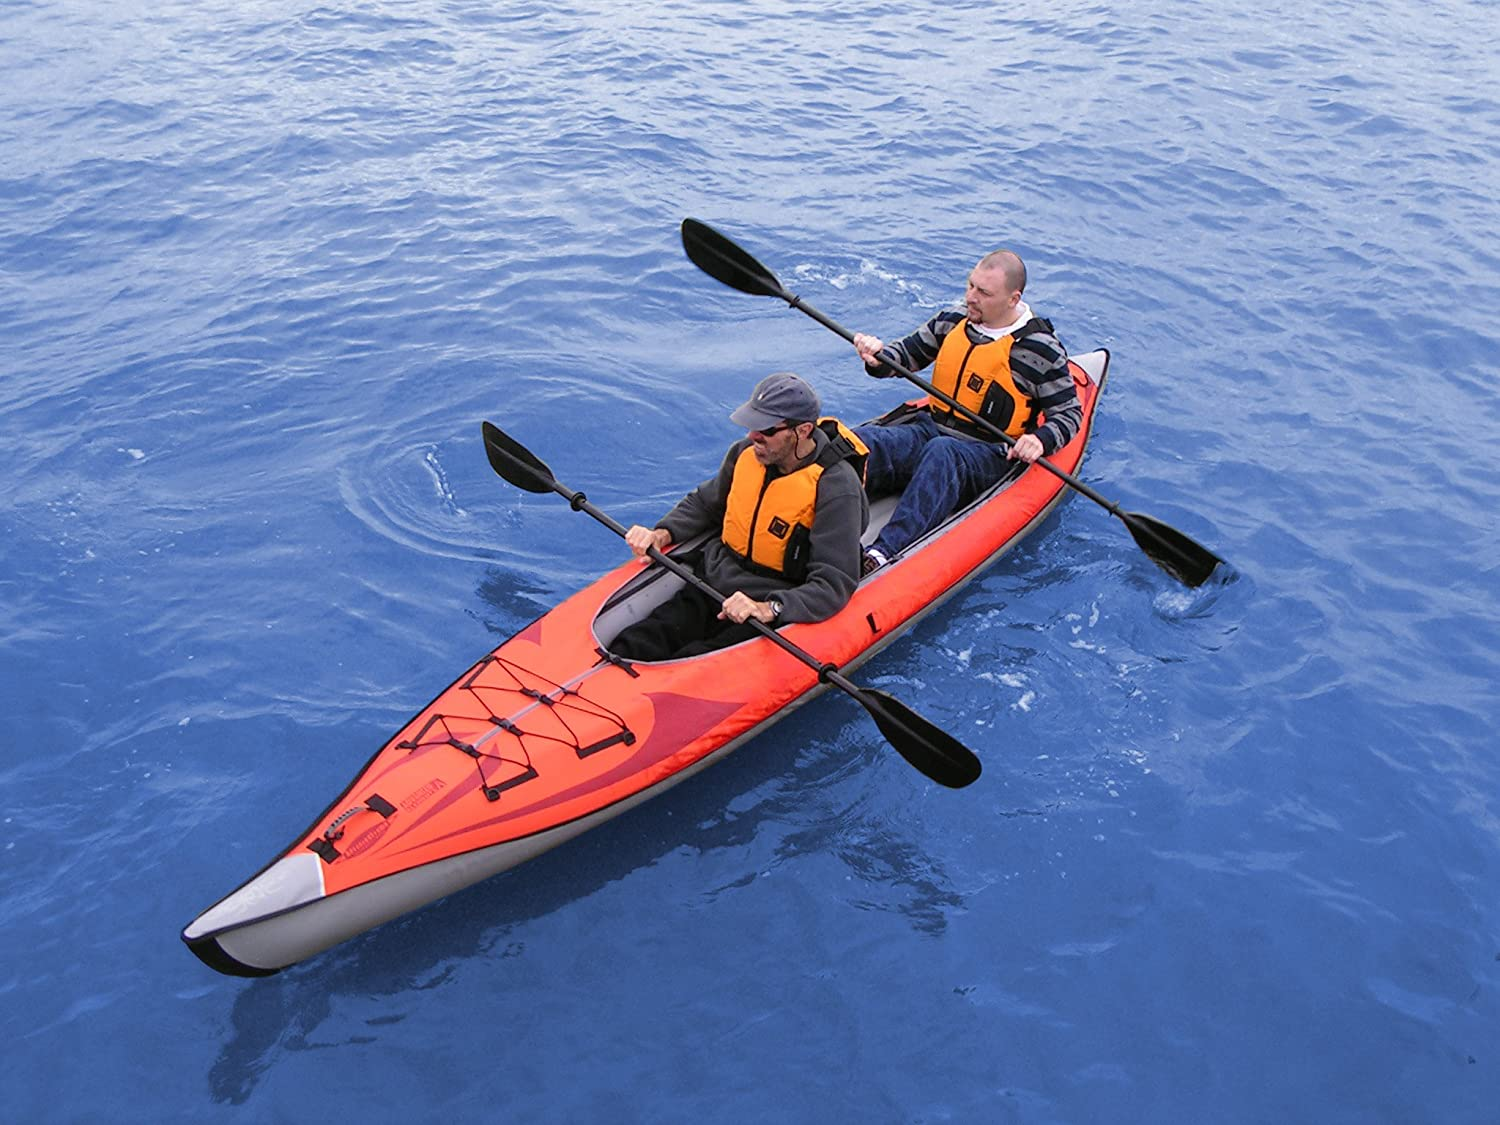 Advanced Elements AdvancedFrame Convertible Inflatable Kayak Review